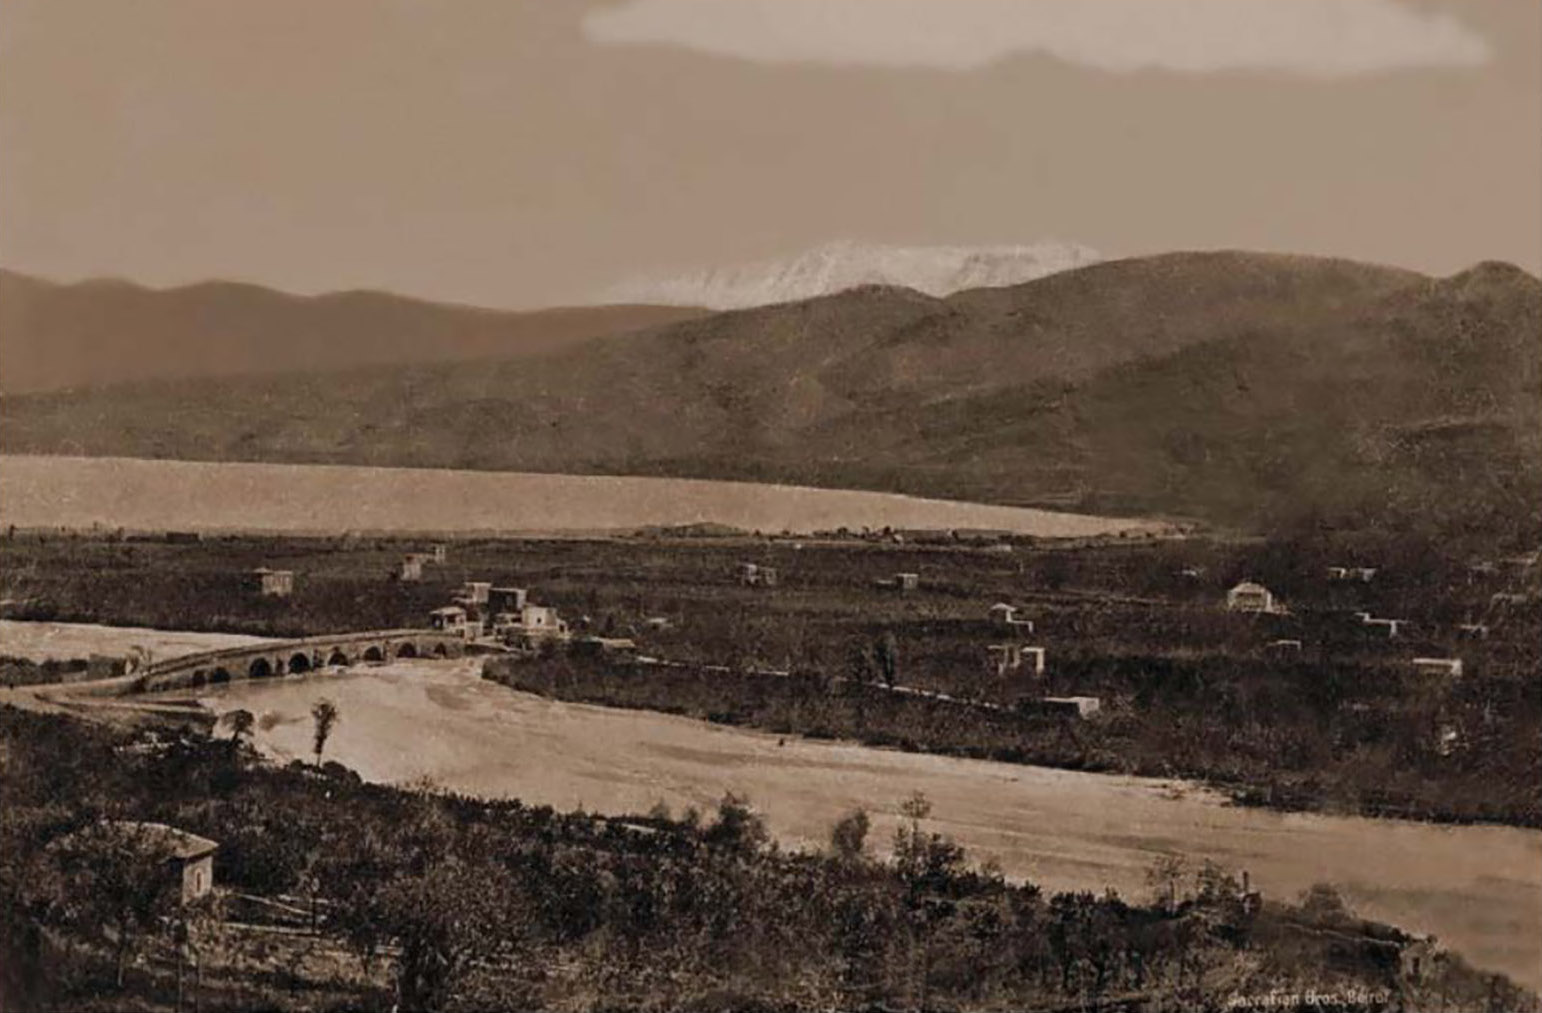 A historical photo from 1910 showing the coastal suburb of Bourj Hammoud, with agricultural lands seen on either bank of a river with a bridge crossing